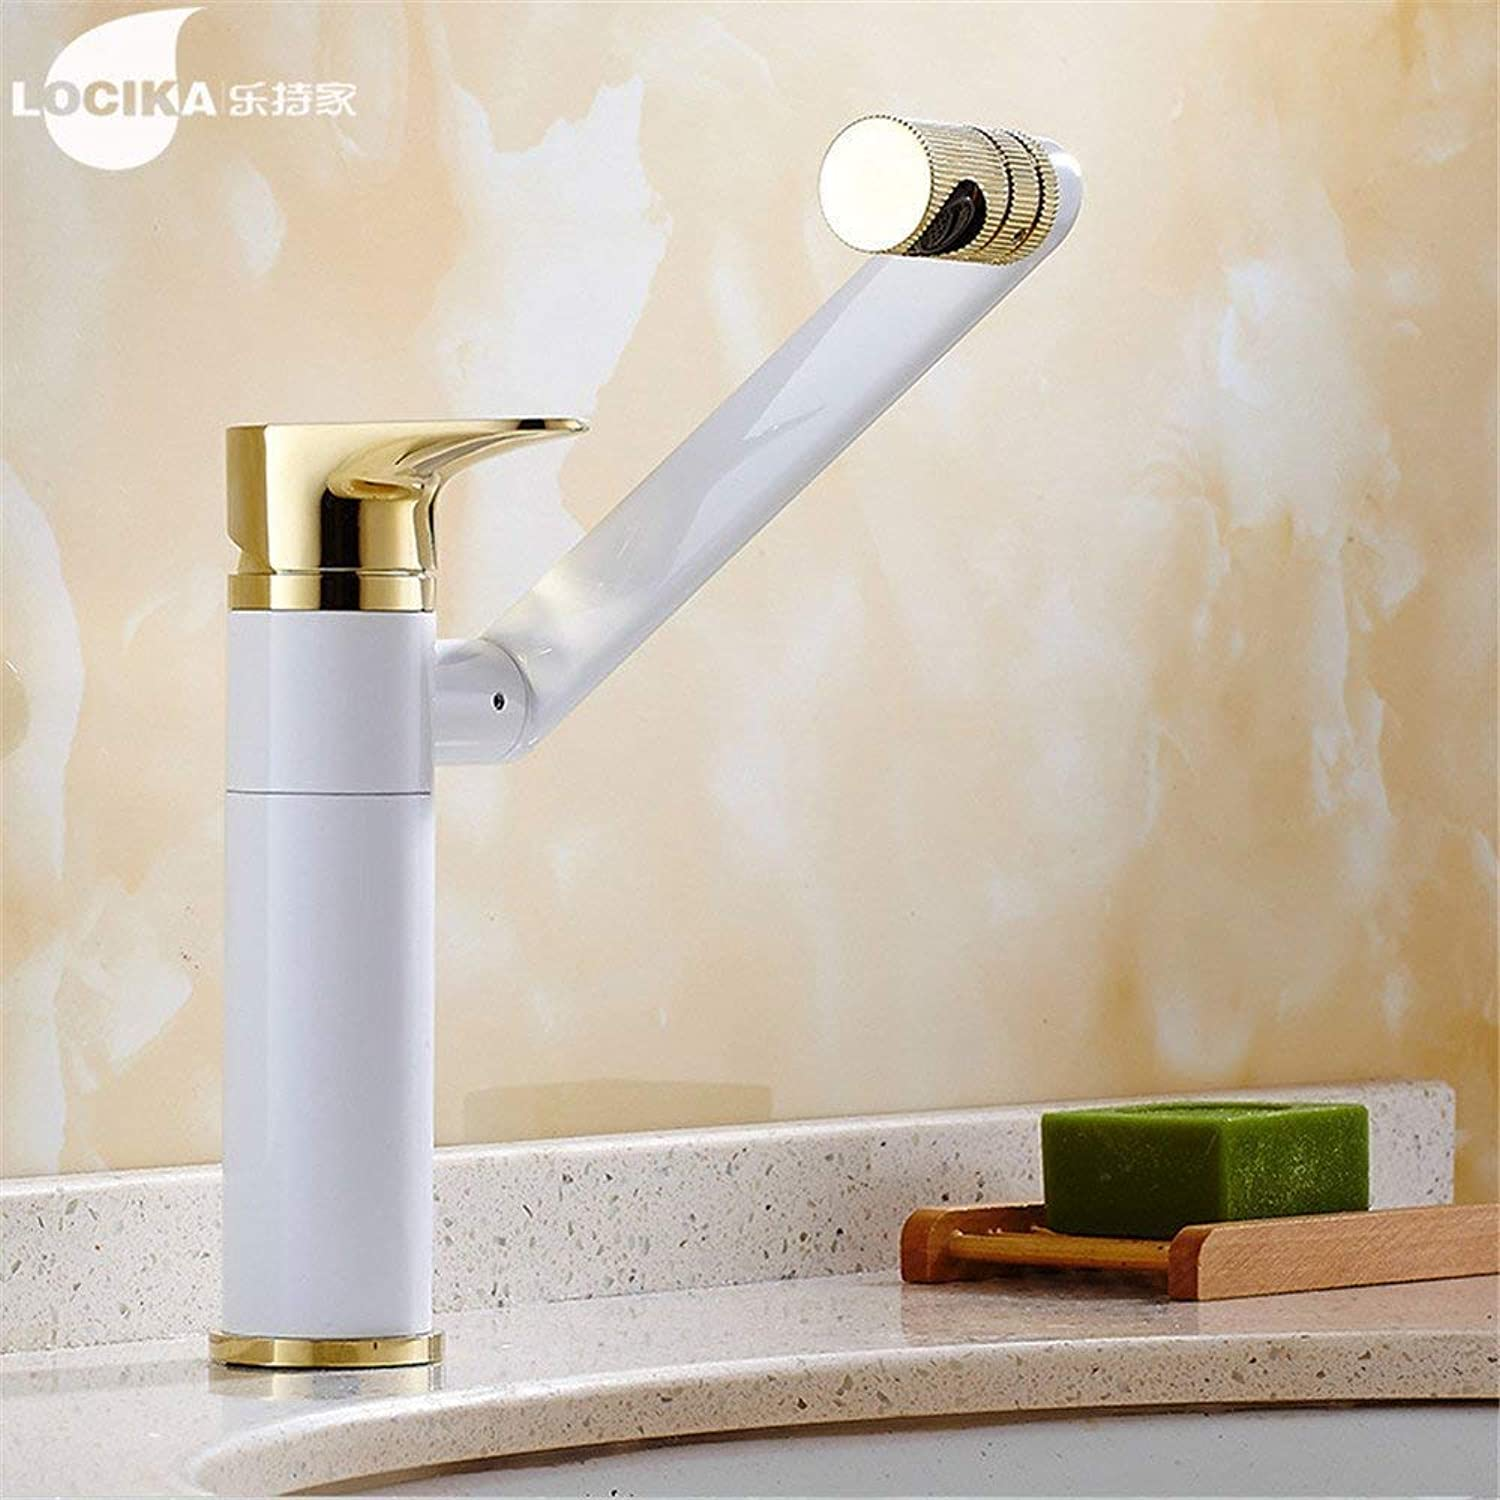 FuweiEncore Basin, Hot and Cold Water Faucet, Single Hole, All Copper, Revolving Bathroom Cabinet, Washroom, Toilet, Wash Basin, Basin, Warm, White and gold. (color   -, Size   -)